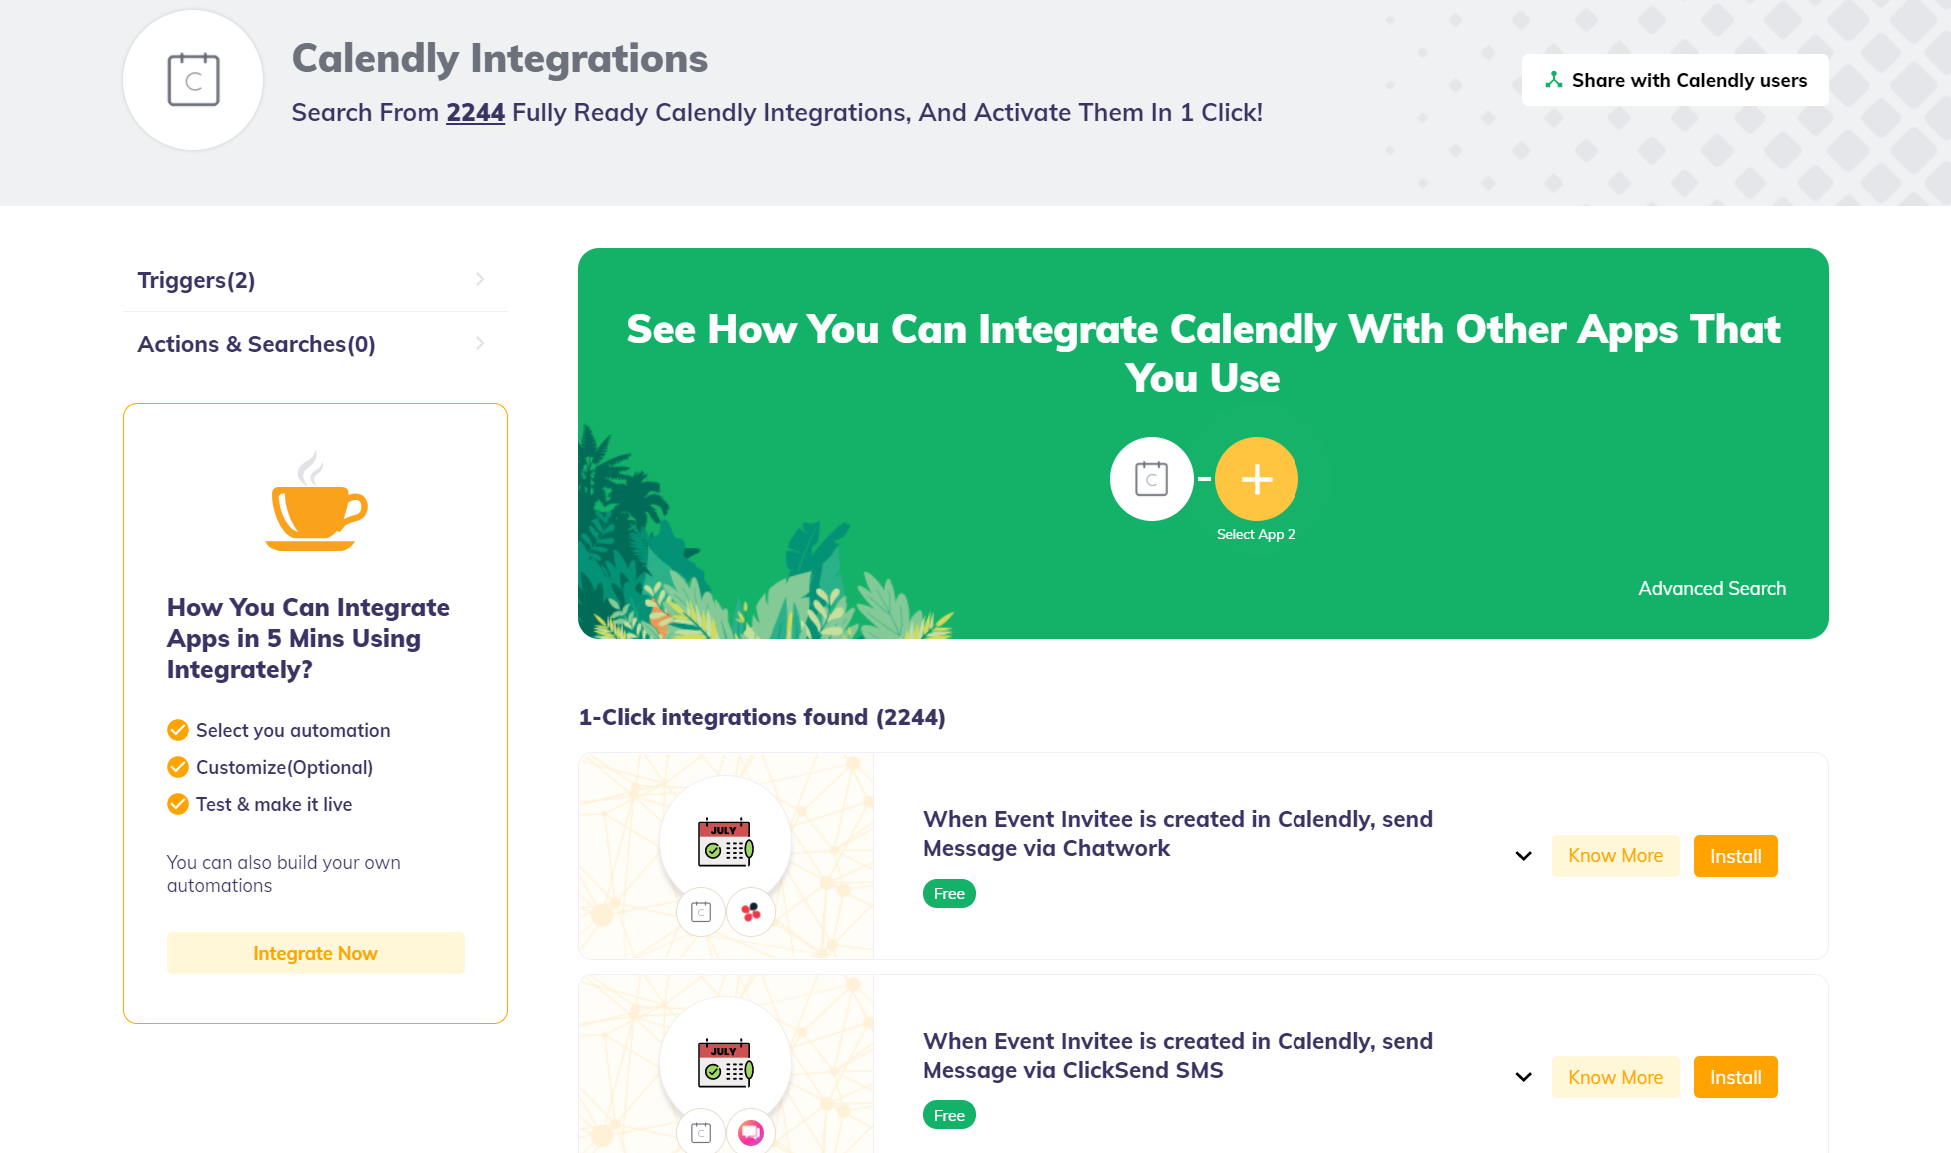 Integrately - Available one click Integrations for Calendly